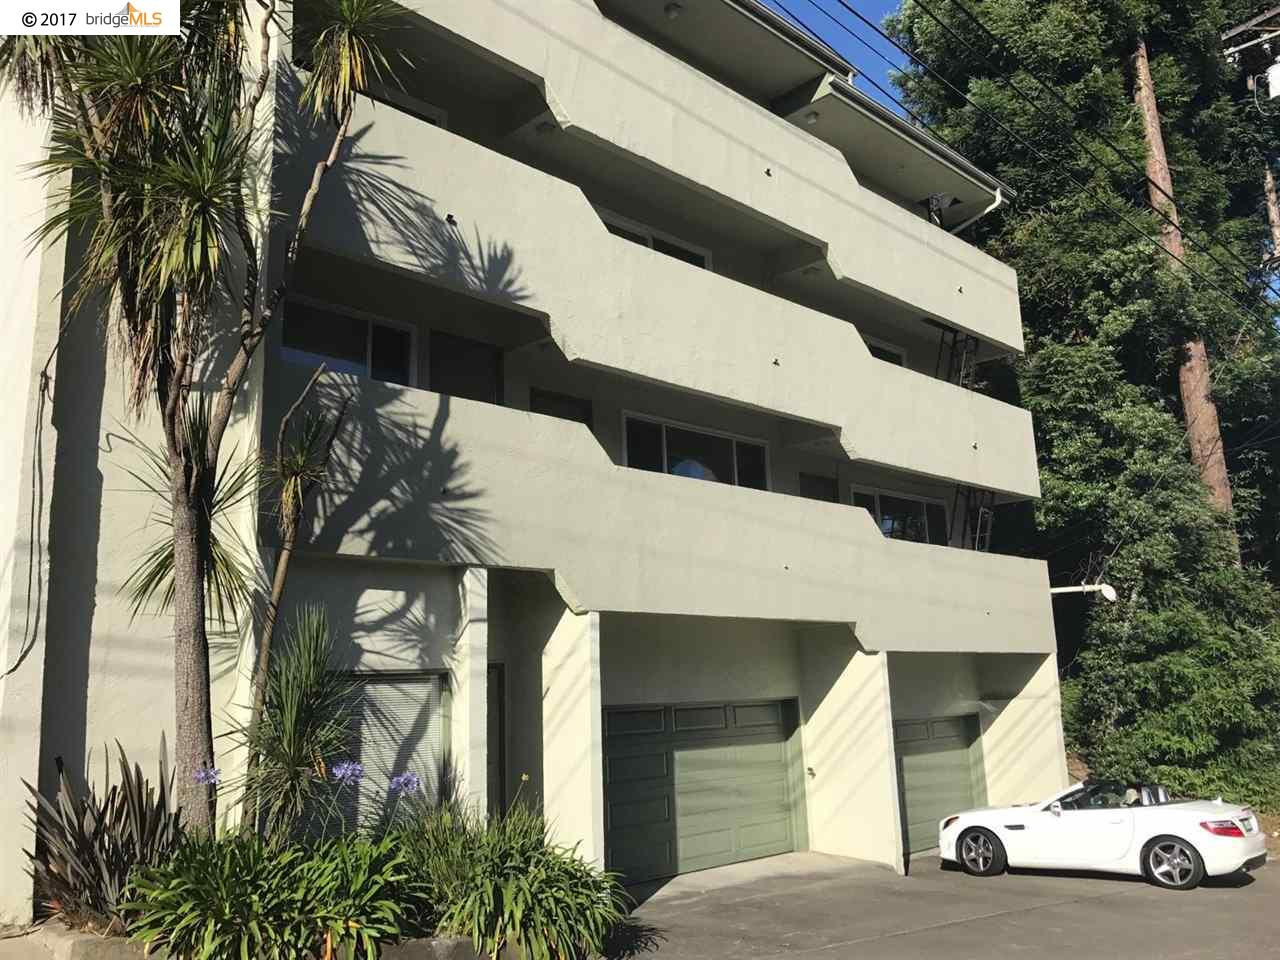 Multi-Family Home for Sale at 655 Macarthur Blvd Oakland, California 94610 United States